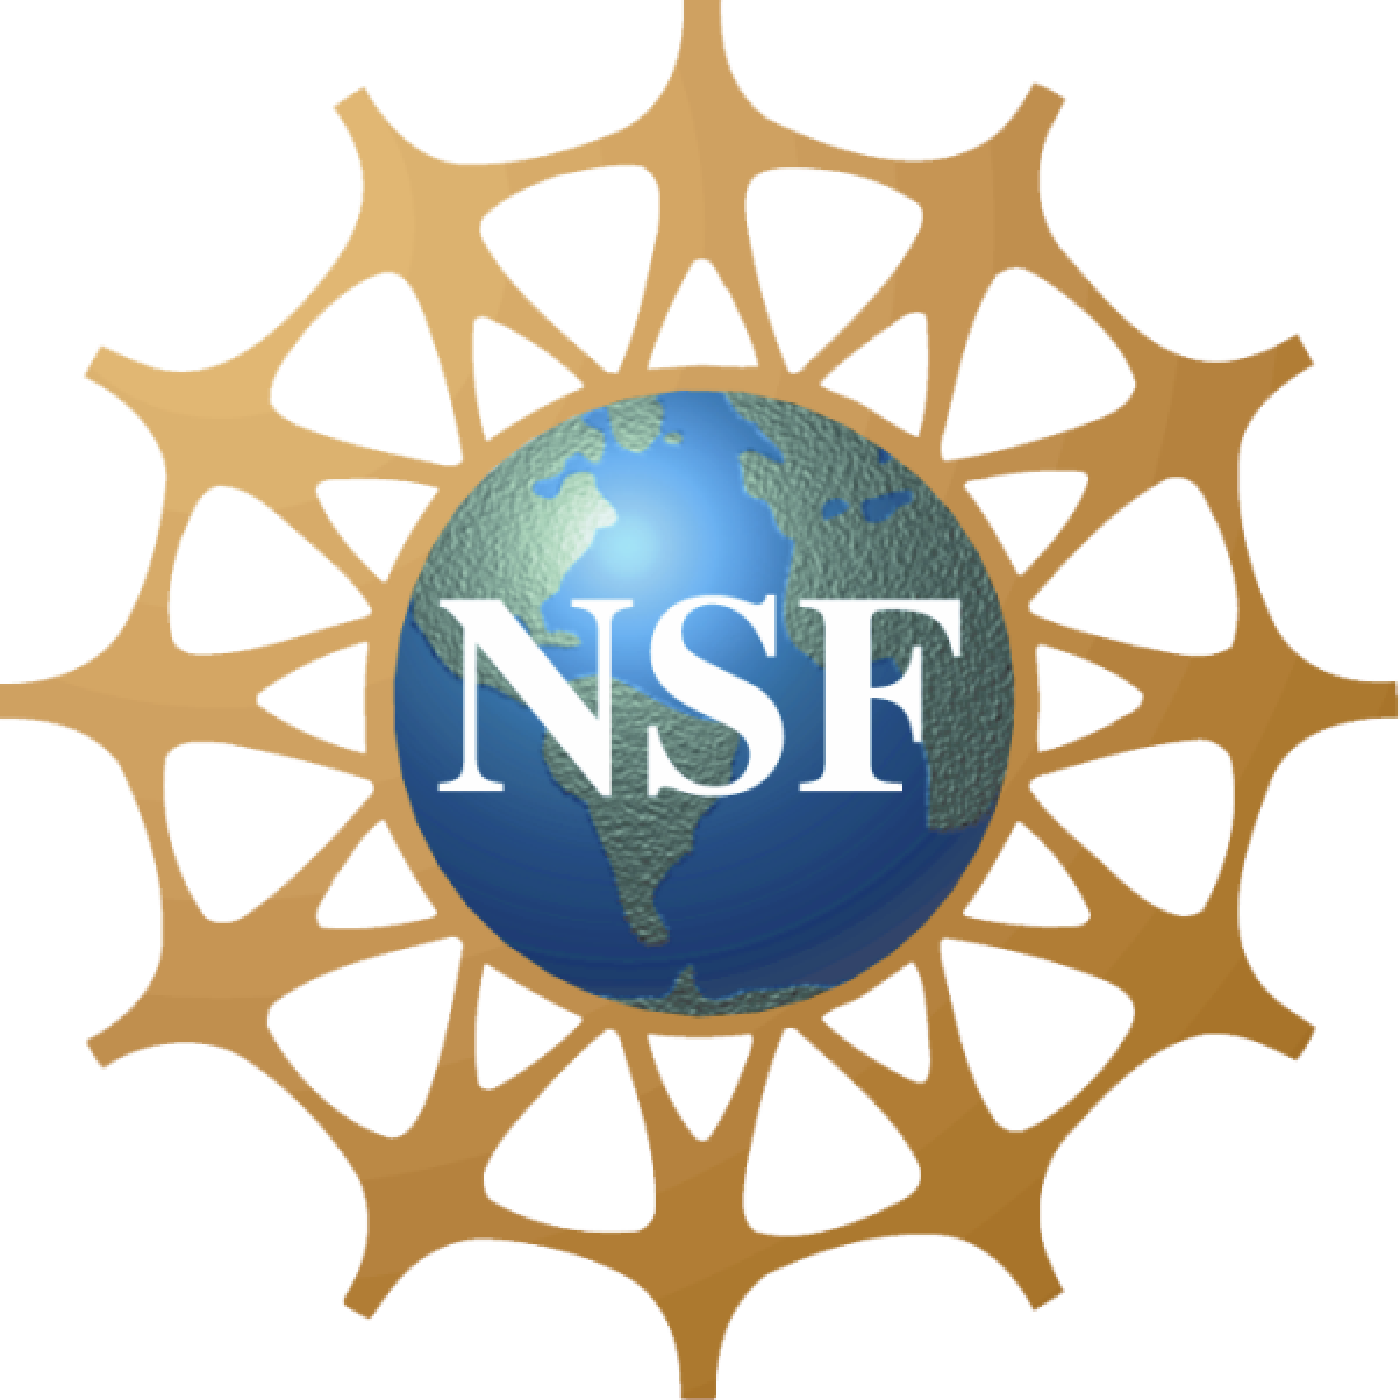 The National Science Foundation is the primary source of federal funding for fundamental research and education in all non-medical fields of science and engineering. The NSF was founded in 1950 and currently provides over $7 billion in funding. Each year, the NSF receives over 50,000 proposals and funds about 10,000 of them after screening for intellectual merit and broader societal impact.